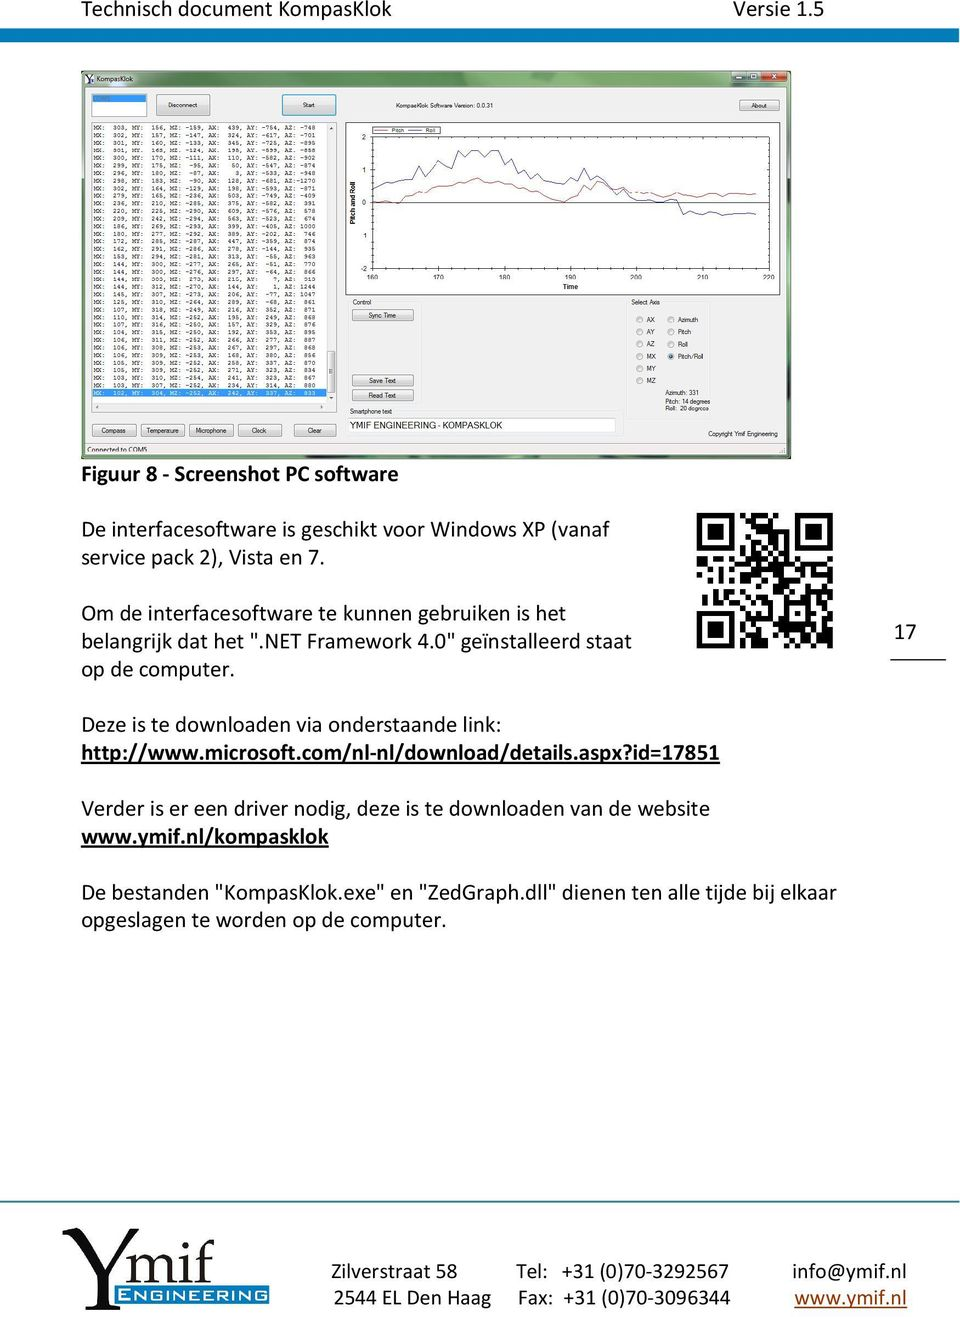 17 Deze is te downloaden via onderstaande link: http://www.microsoft.com/nl-nl/download/details.aspx?